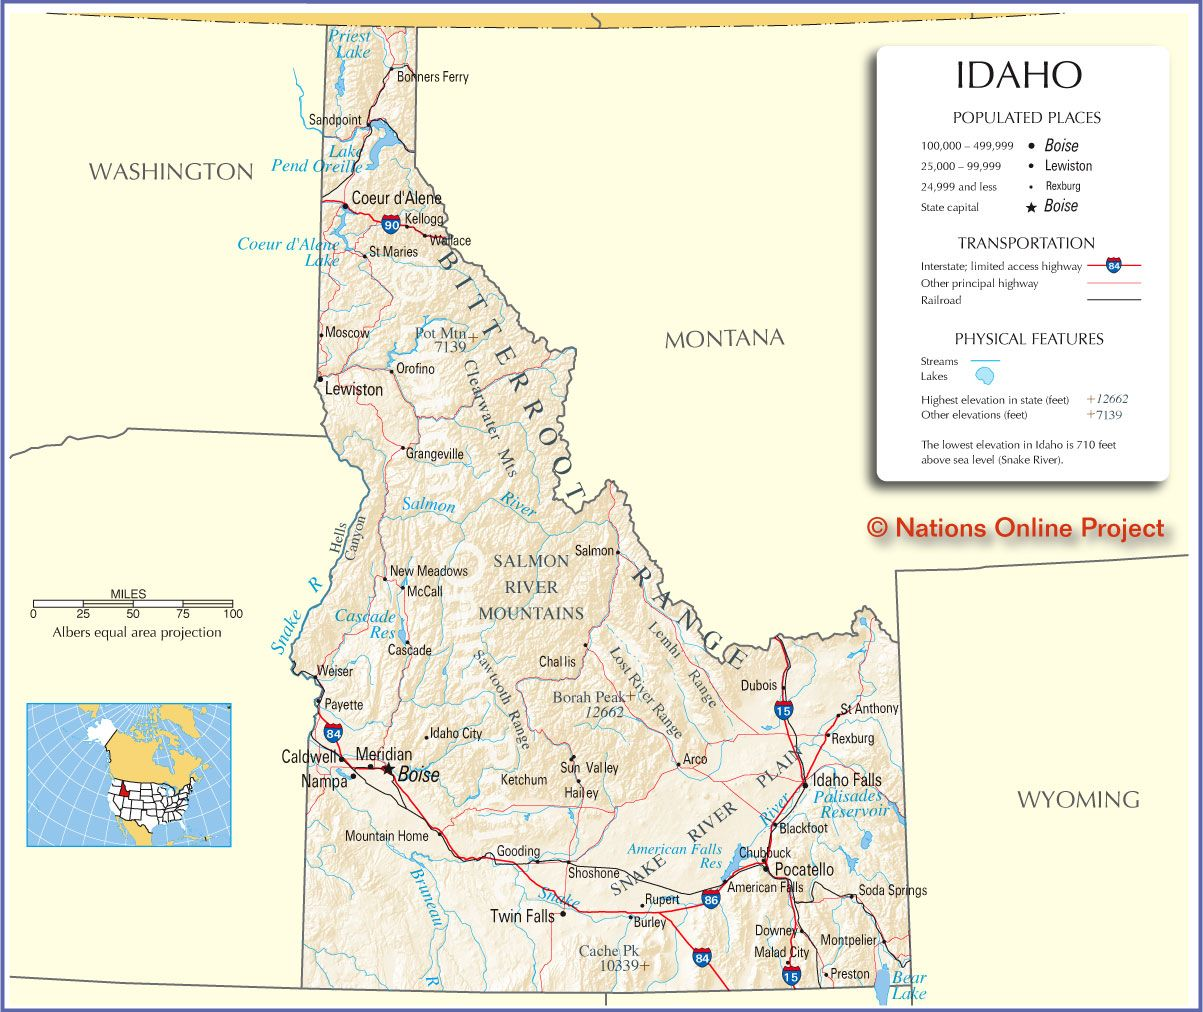 Idaho Map Reference Map Of Idaho Map Is Based On A State Idaho - Map of idaho